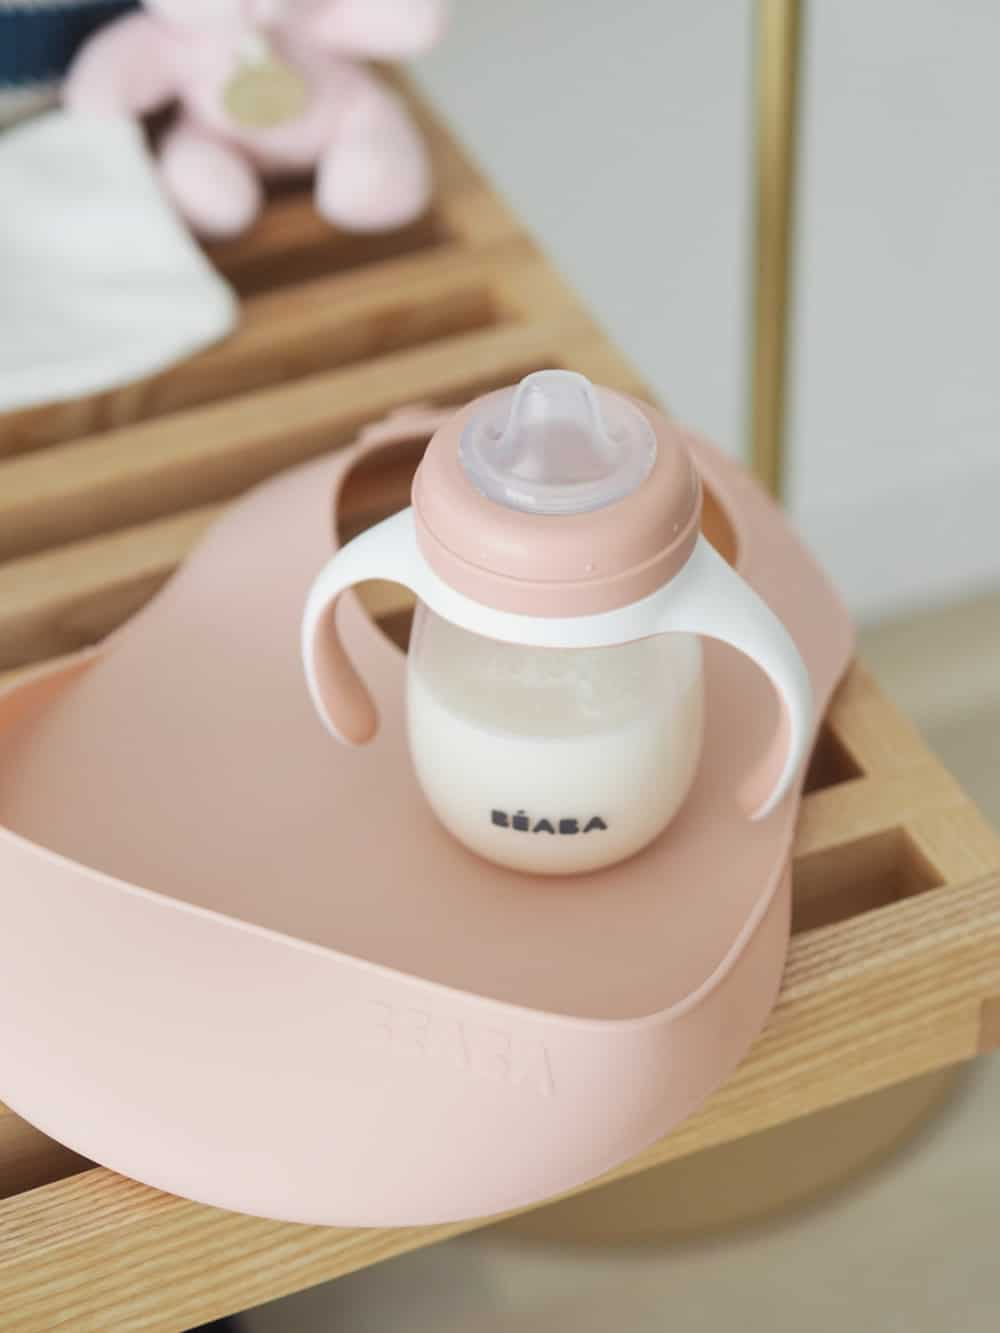 Silicone Bib on Table Next to Sippy Cup